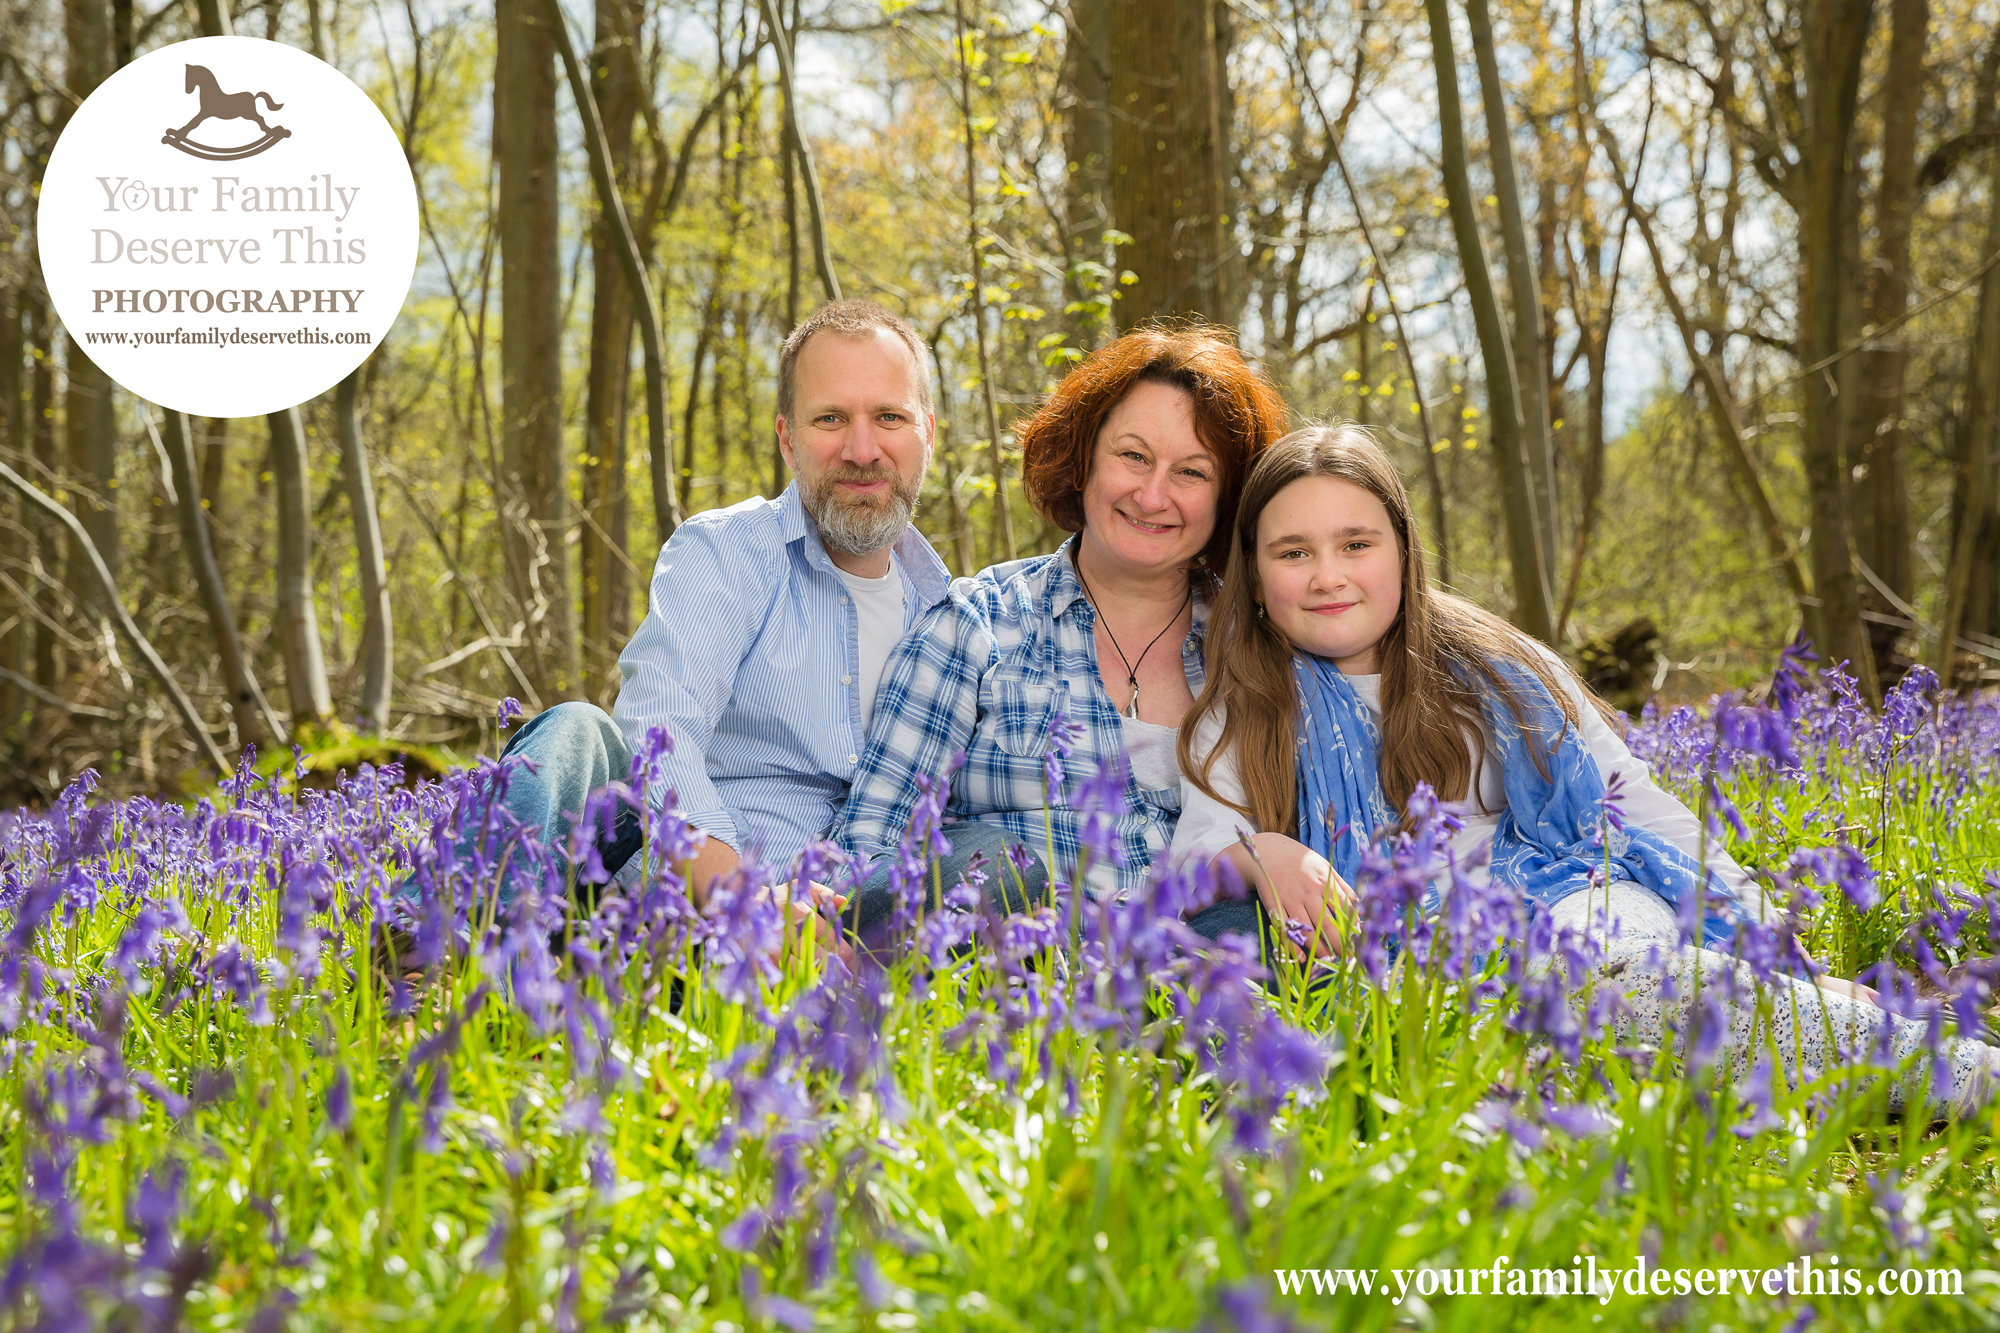 This family chose a shades of blue, complimented with white, for their Bluebell Photo shoot. This  Outdoor Family Portrait  was taken in the woods near  The Vyne . Basingstoke Family Portrait Photographer.